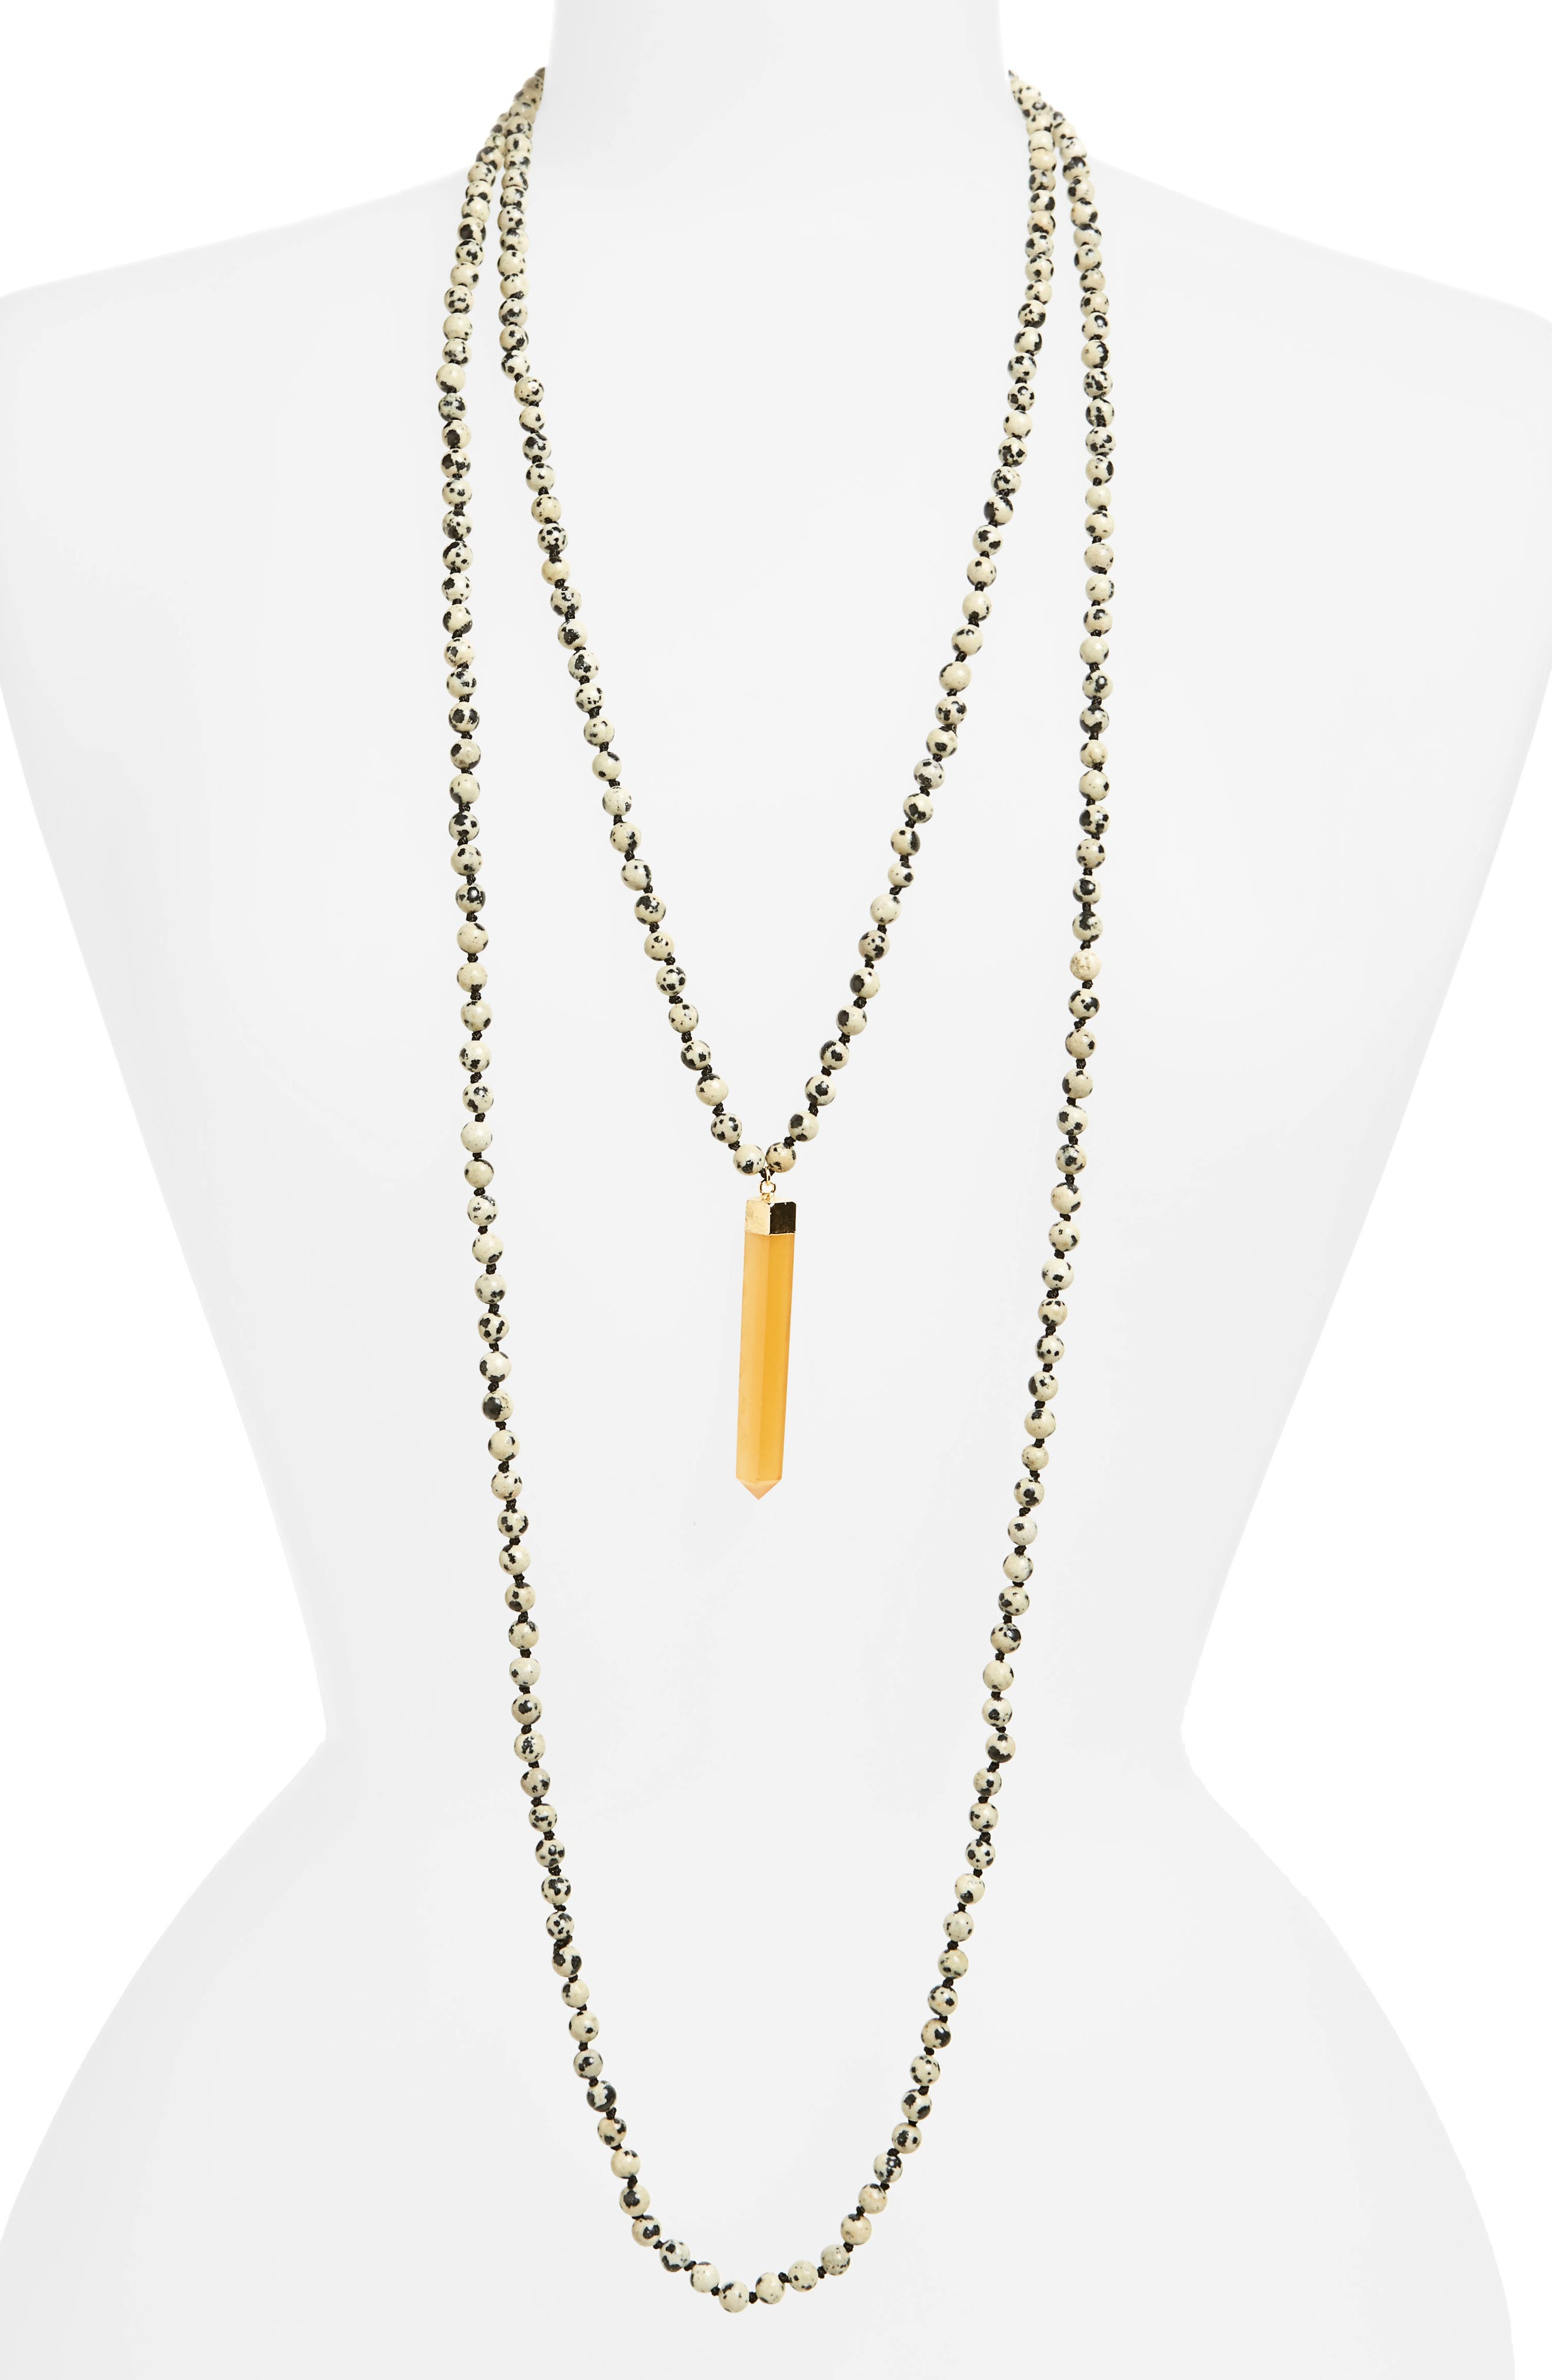 Alternate Image 1 Selected - Love's Affect Knotted Two-Strand Pendant Necklace